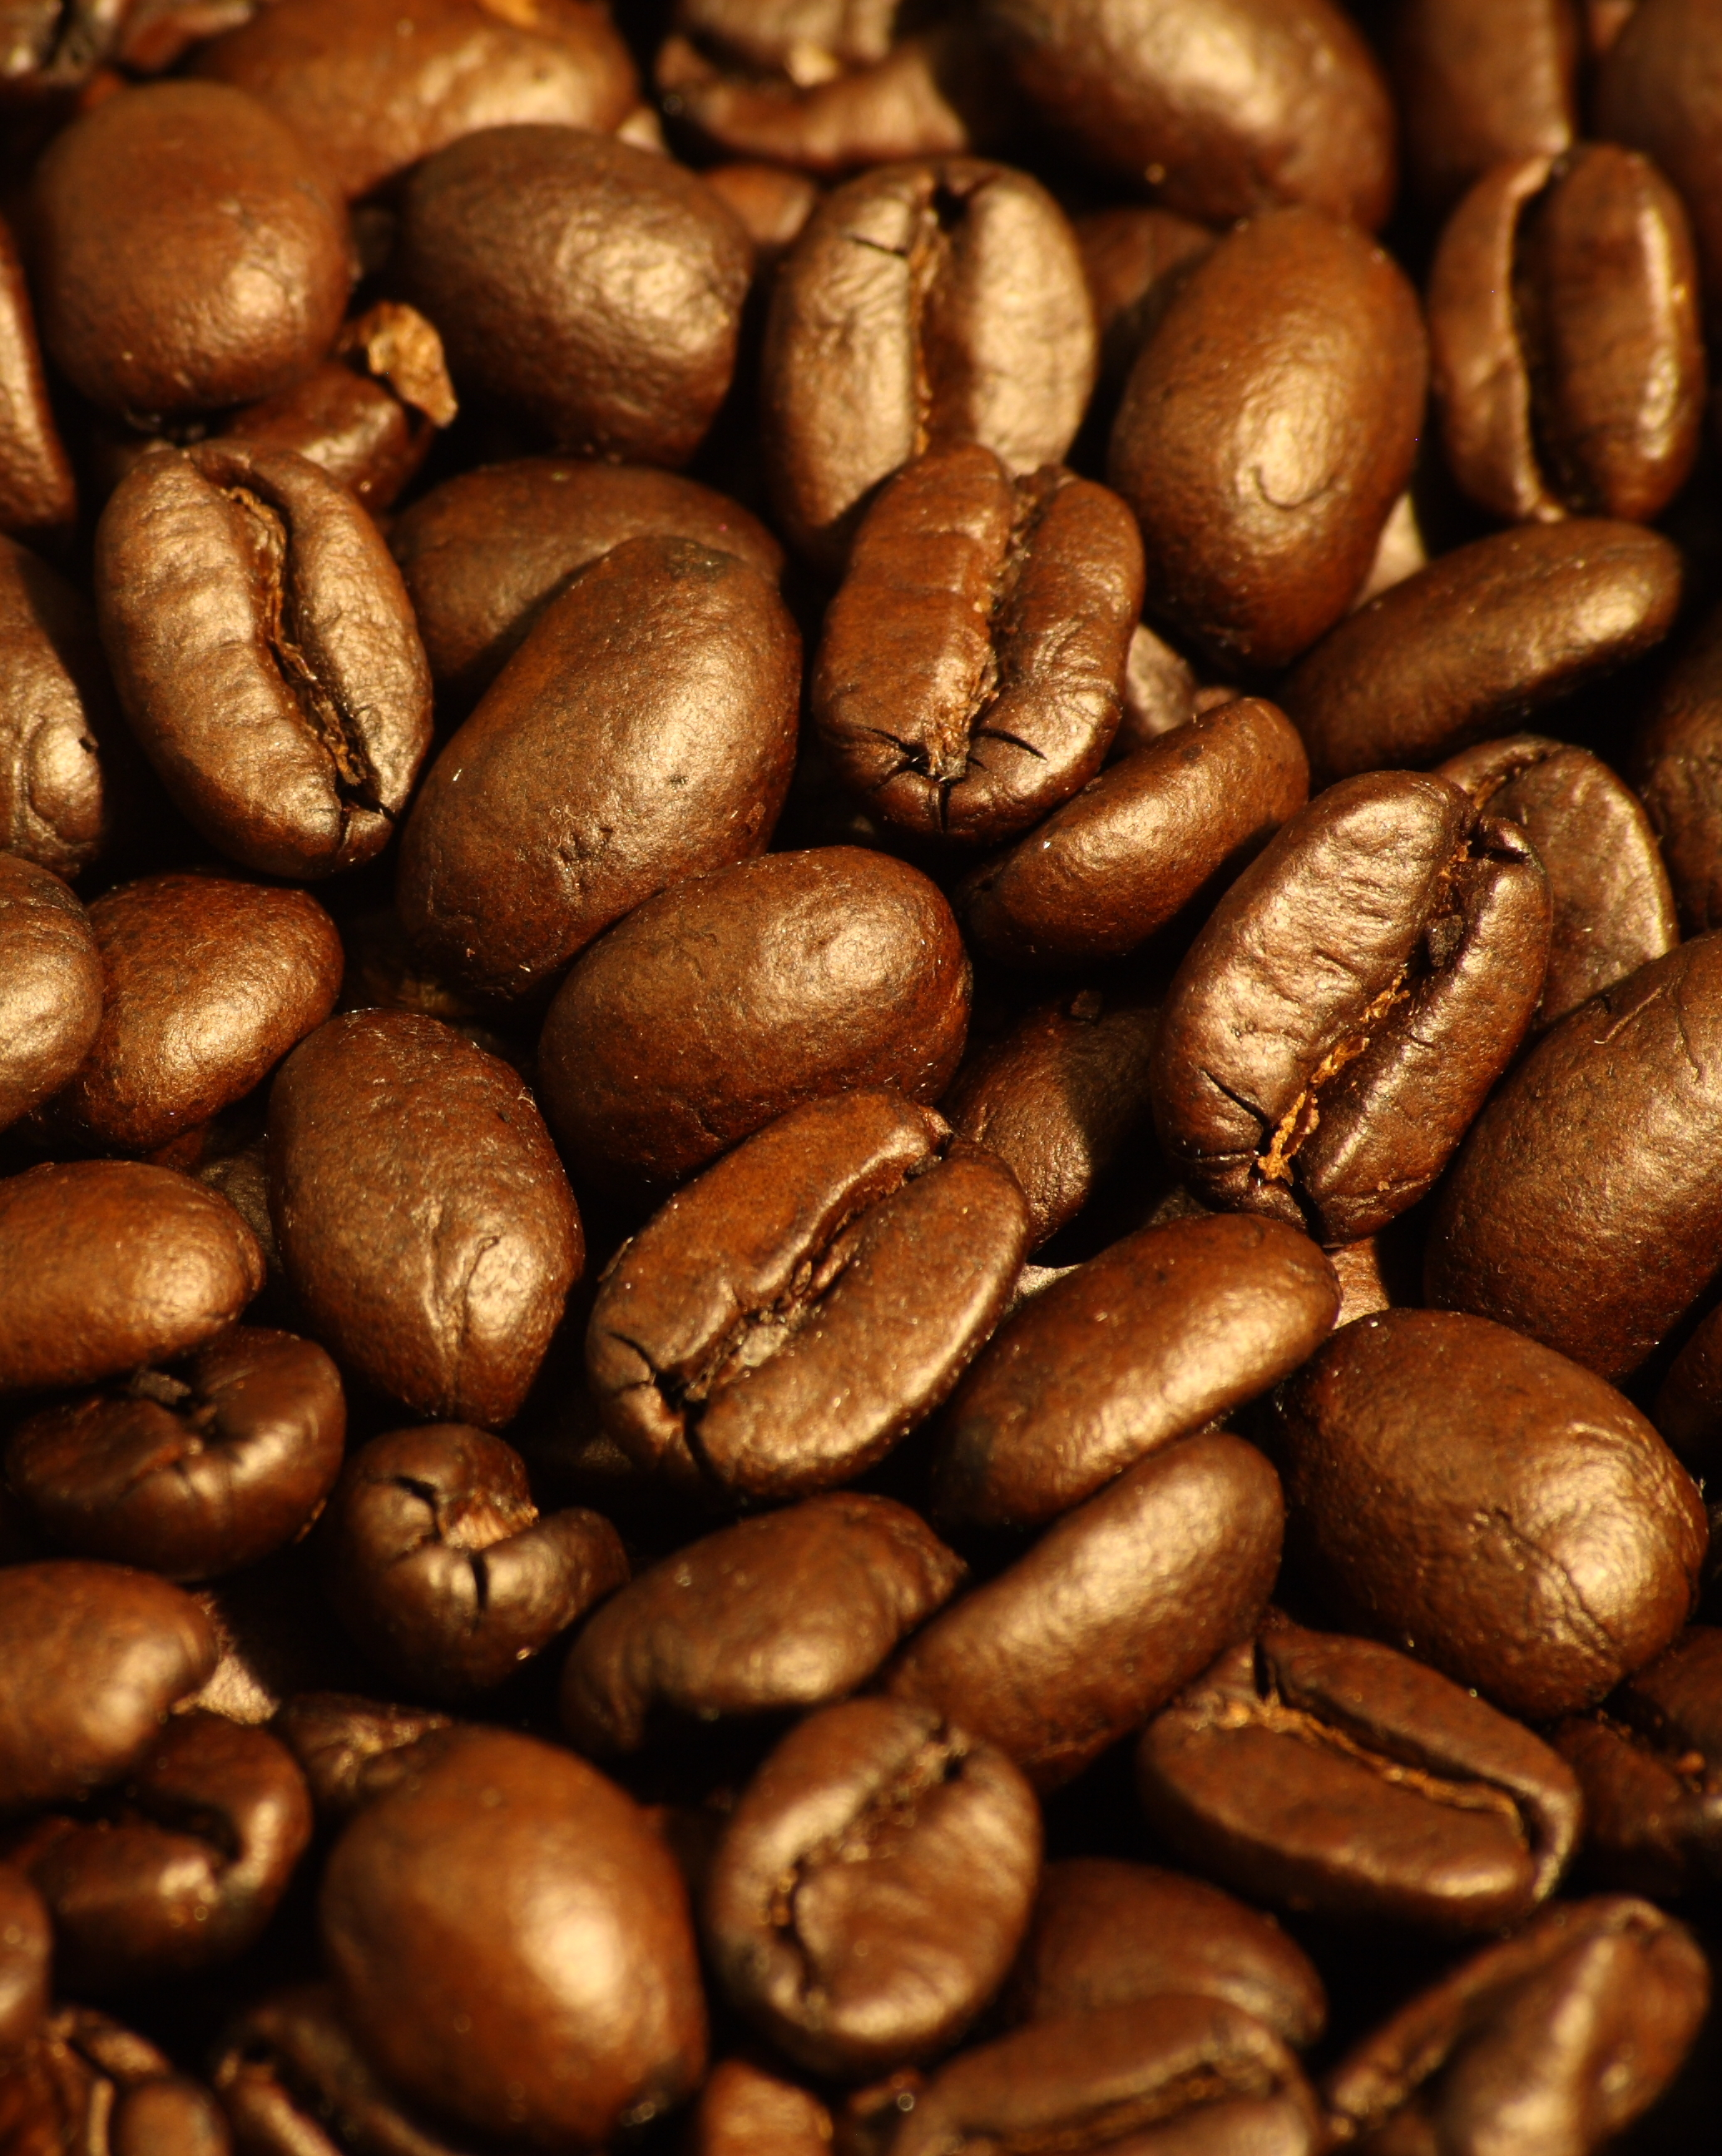 File:Dark roasted espresso blend coffee beans 2.jpg